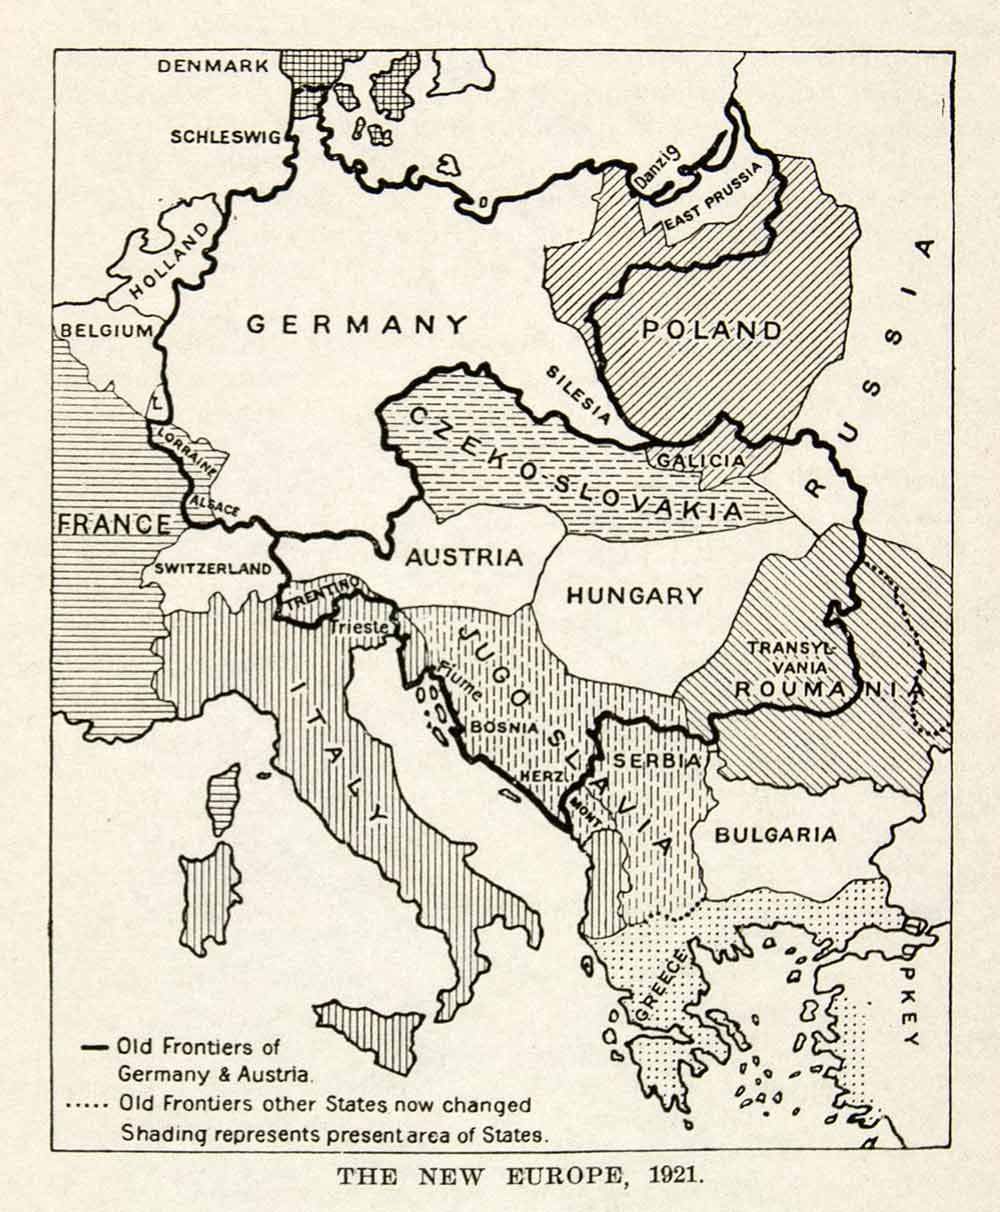 Map Of Germany France And Belgium.1929 Wood Engraving Map Europe Germany France Belgium Italy Austria Xee8